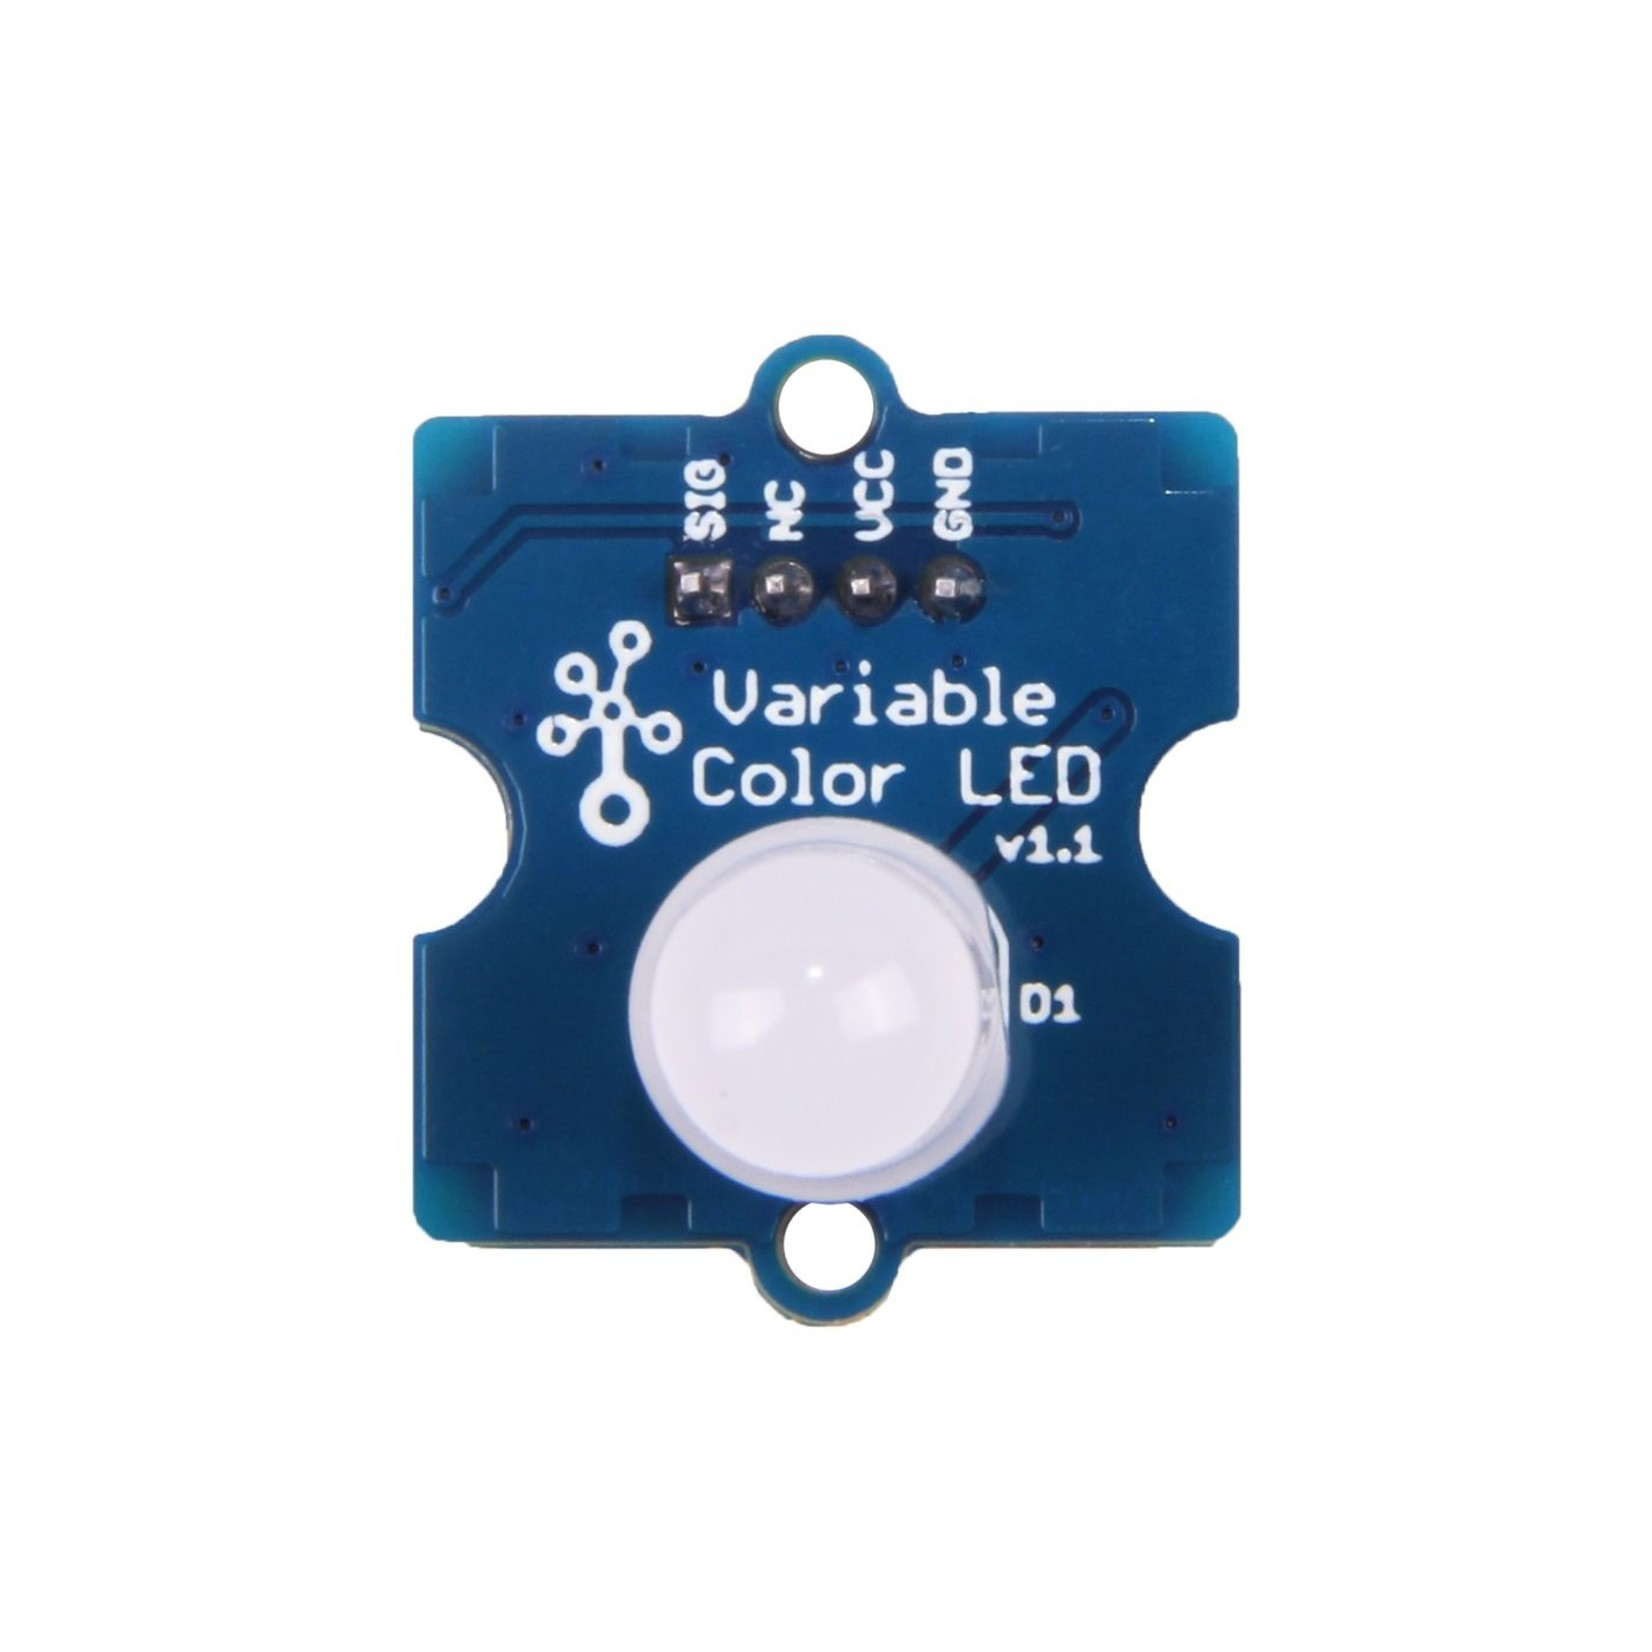 Seeed Grove - Variable Color LED V1.1